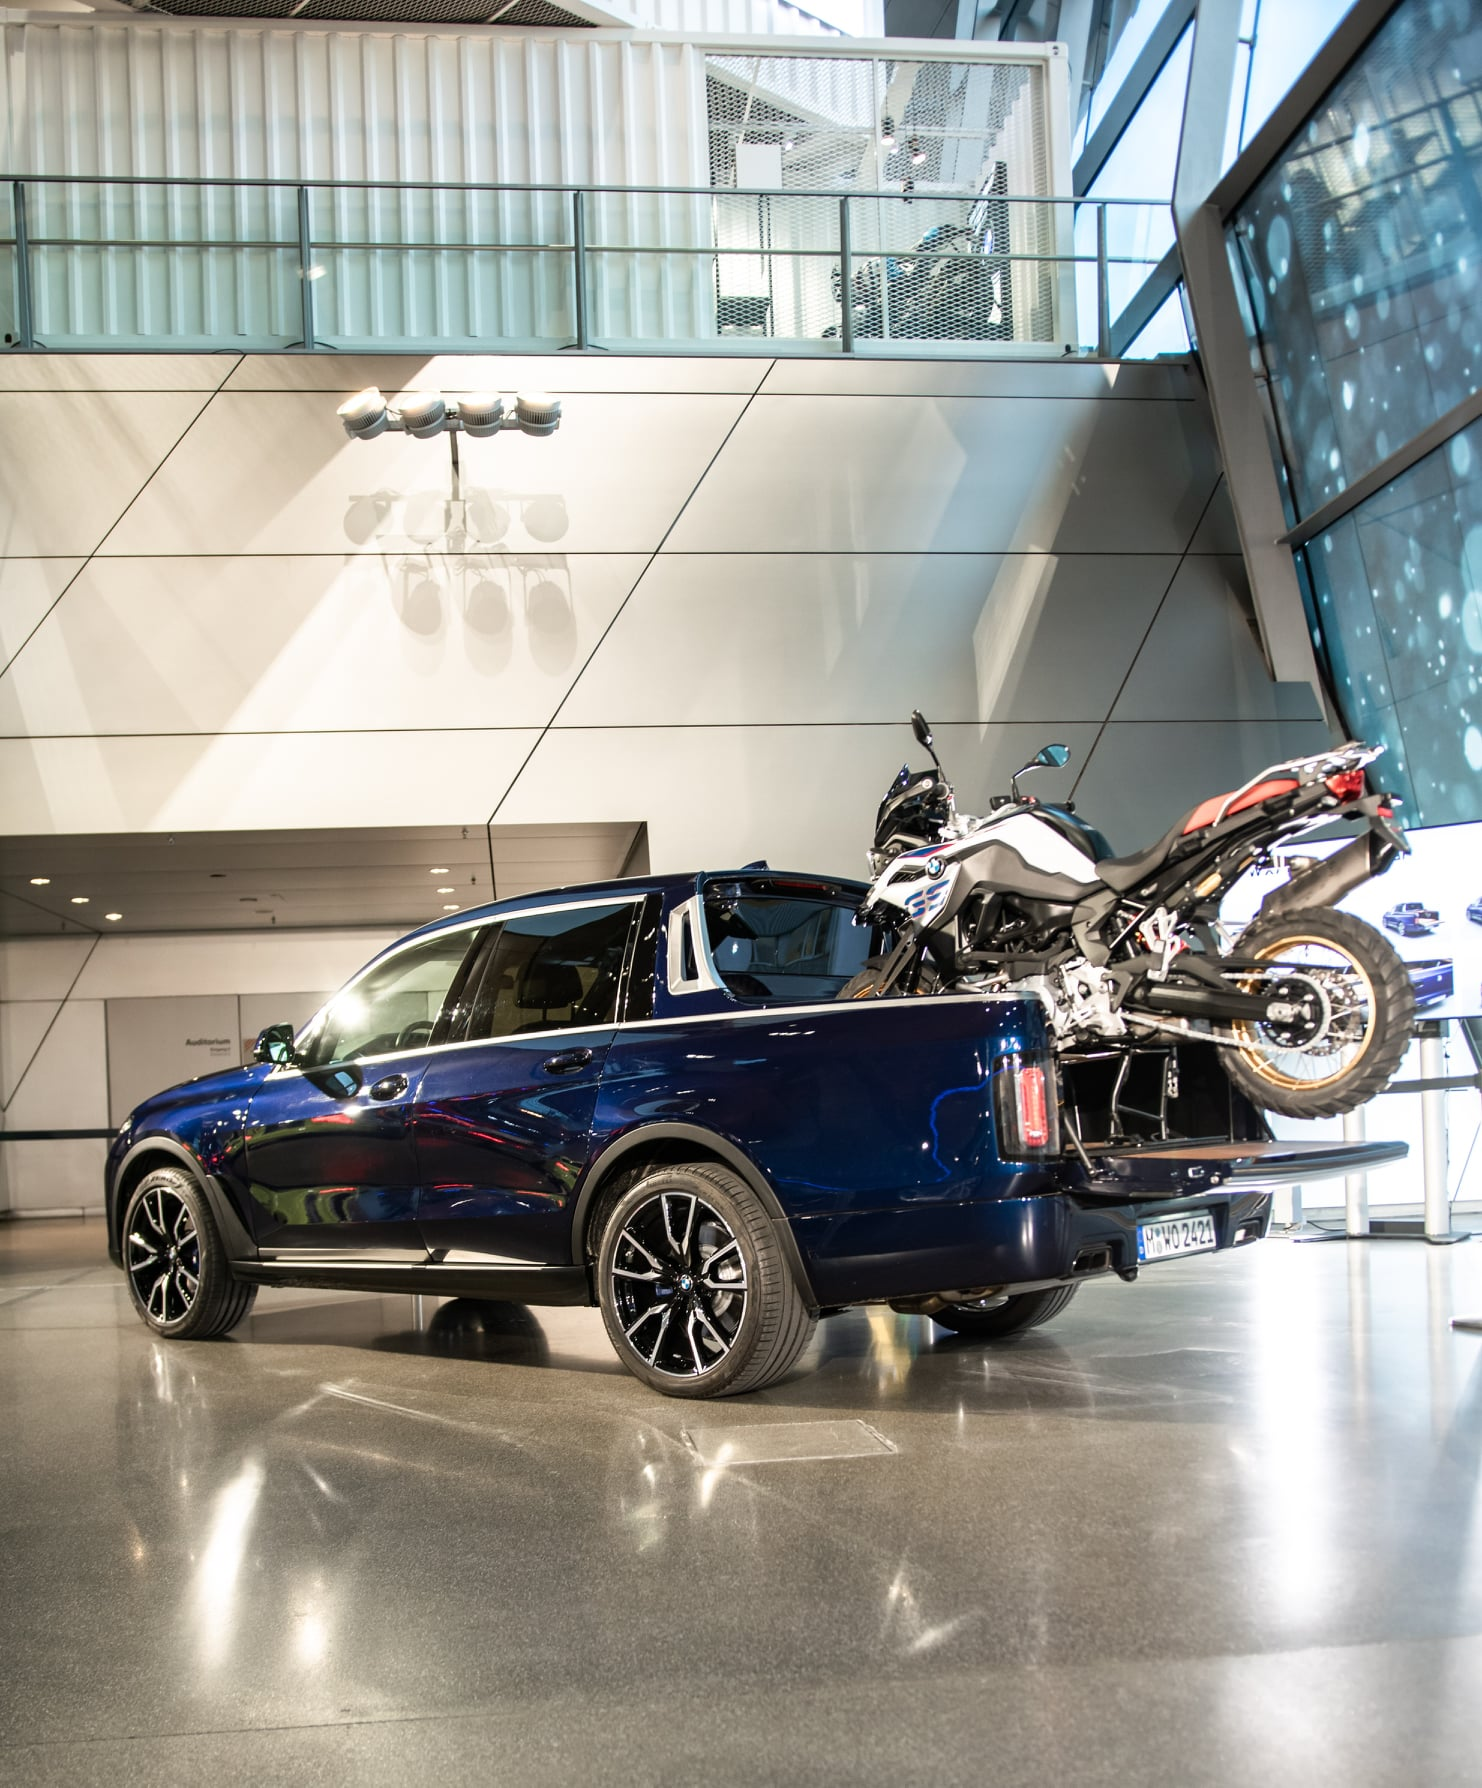 The One Off Bmw X7 Pickup Truck Is Now Displayed At The Bmw Welt